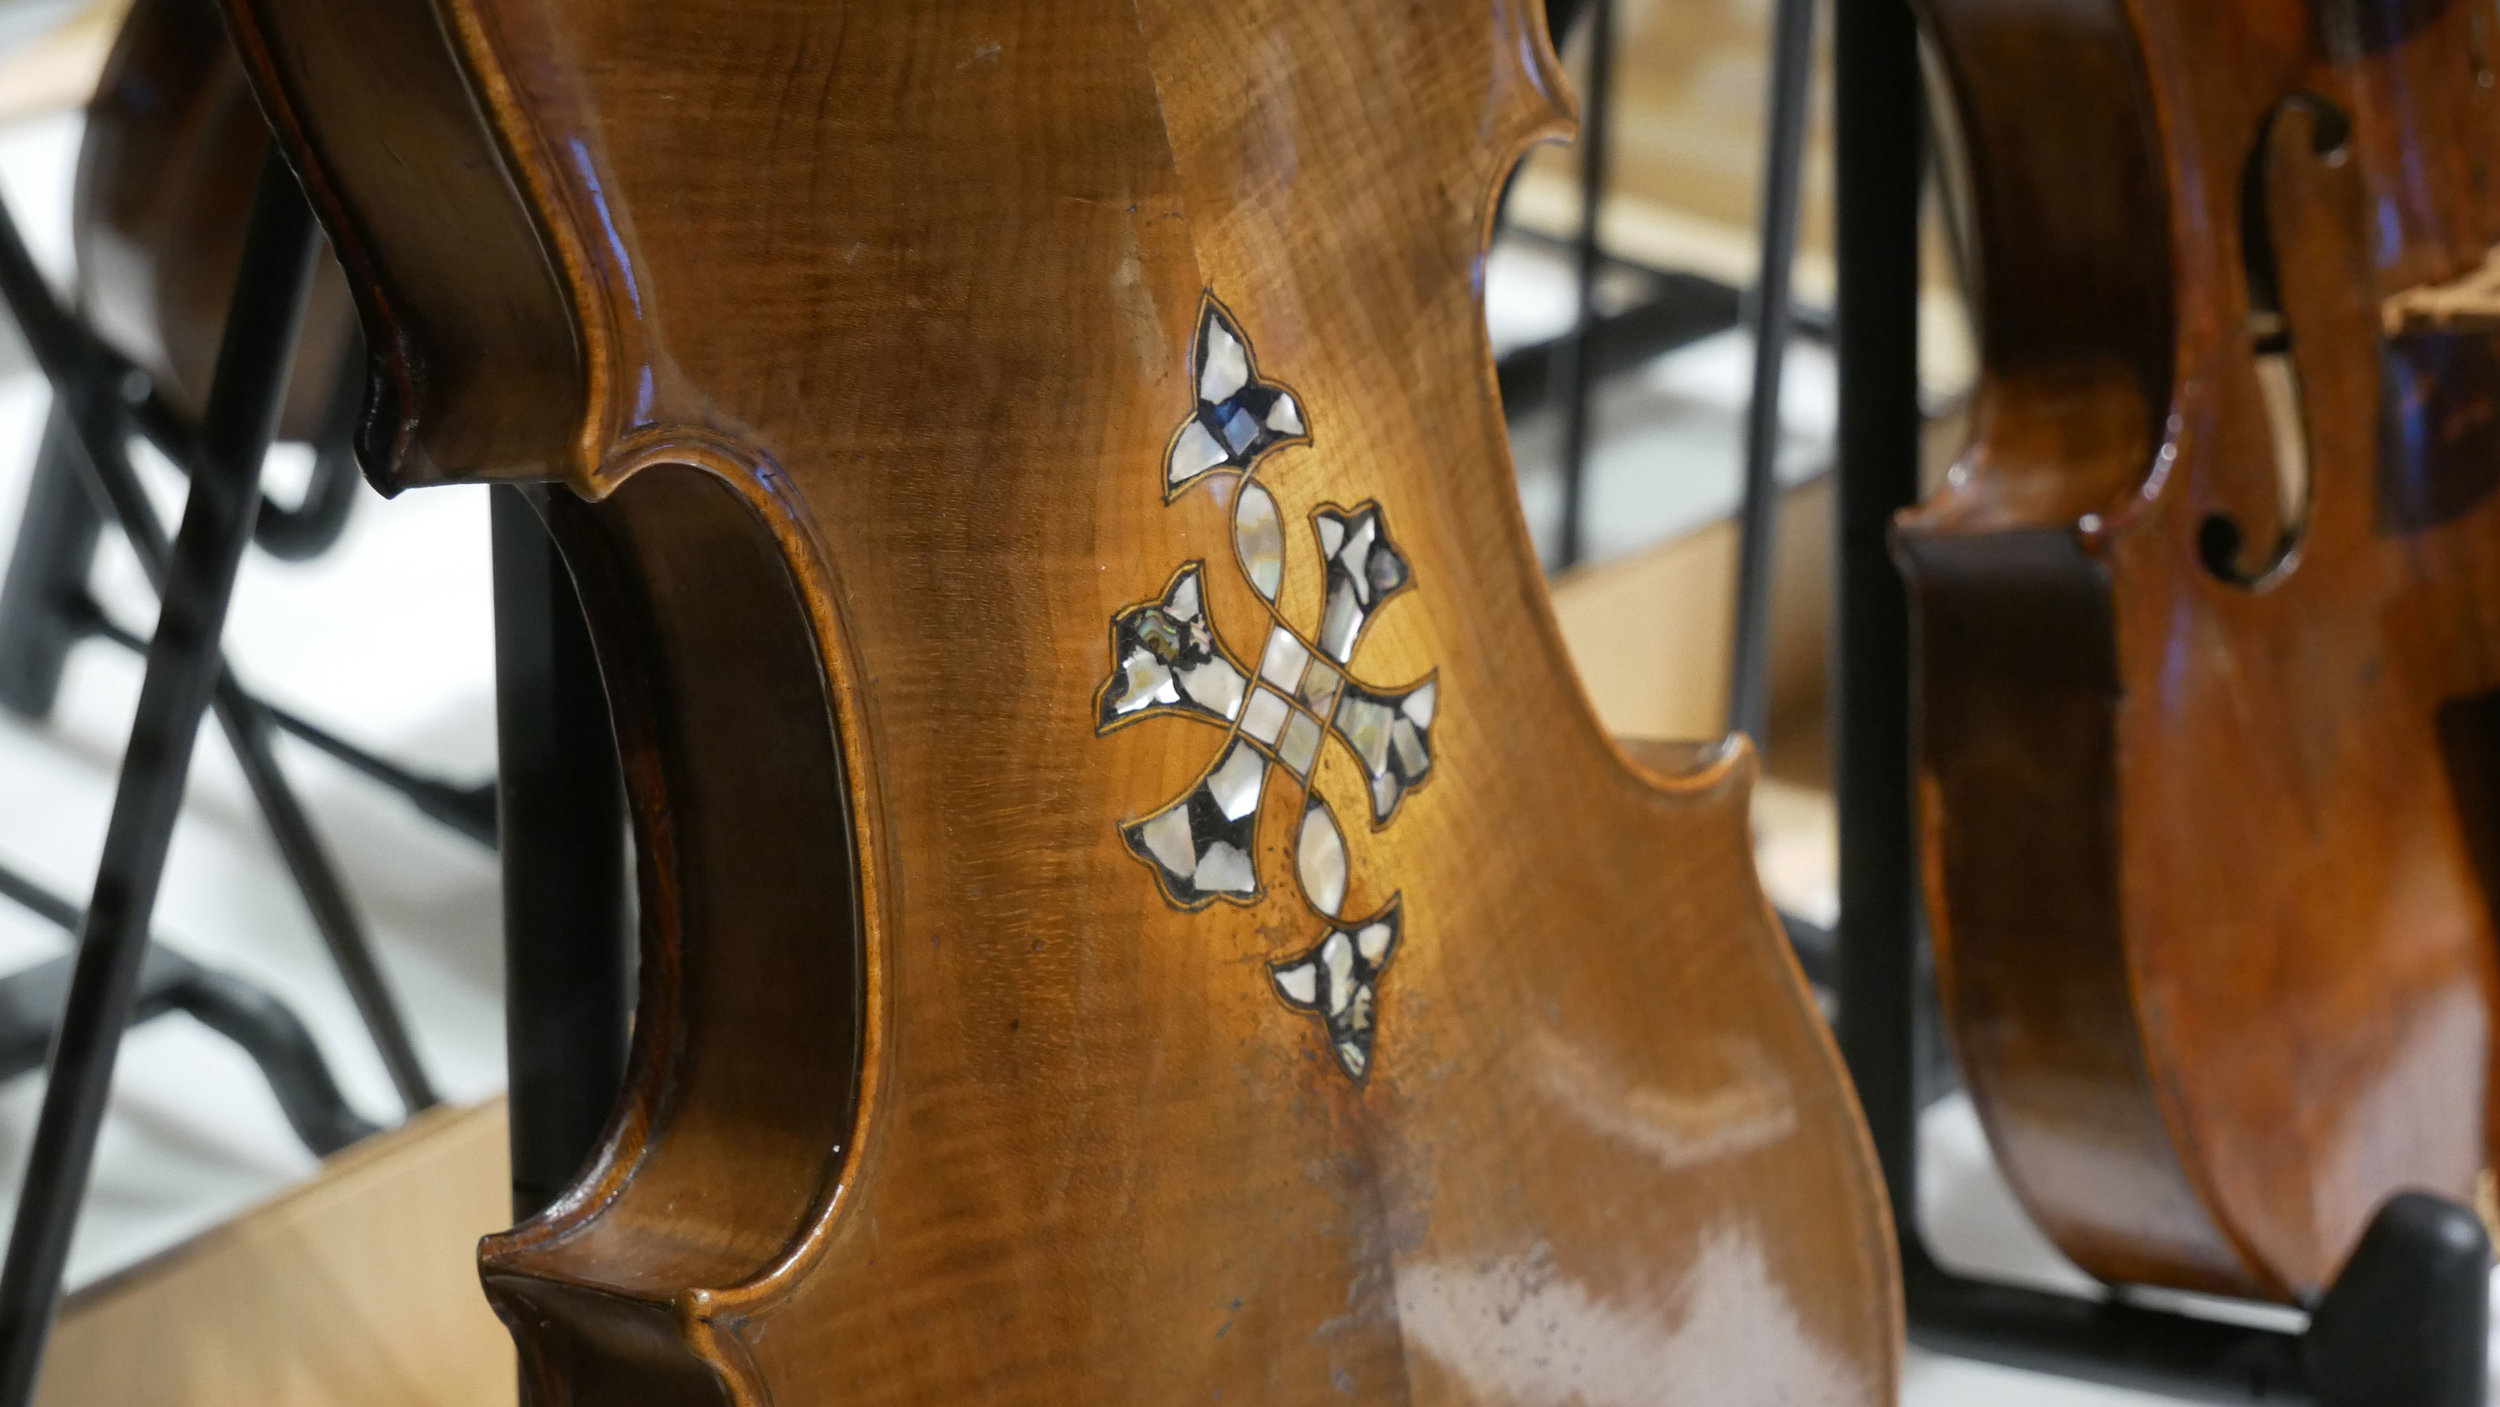 An instrument from the Violins of Hope collection, on display in the Nashville Public Library in 2018.